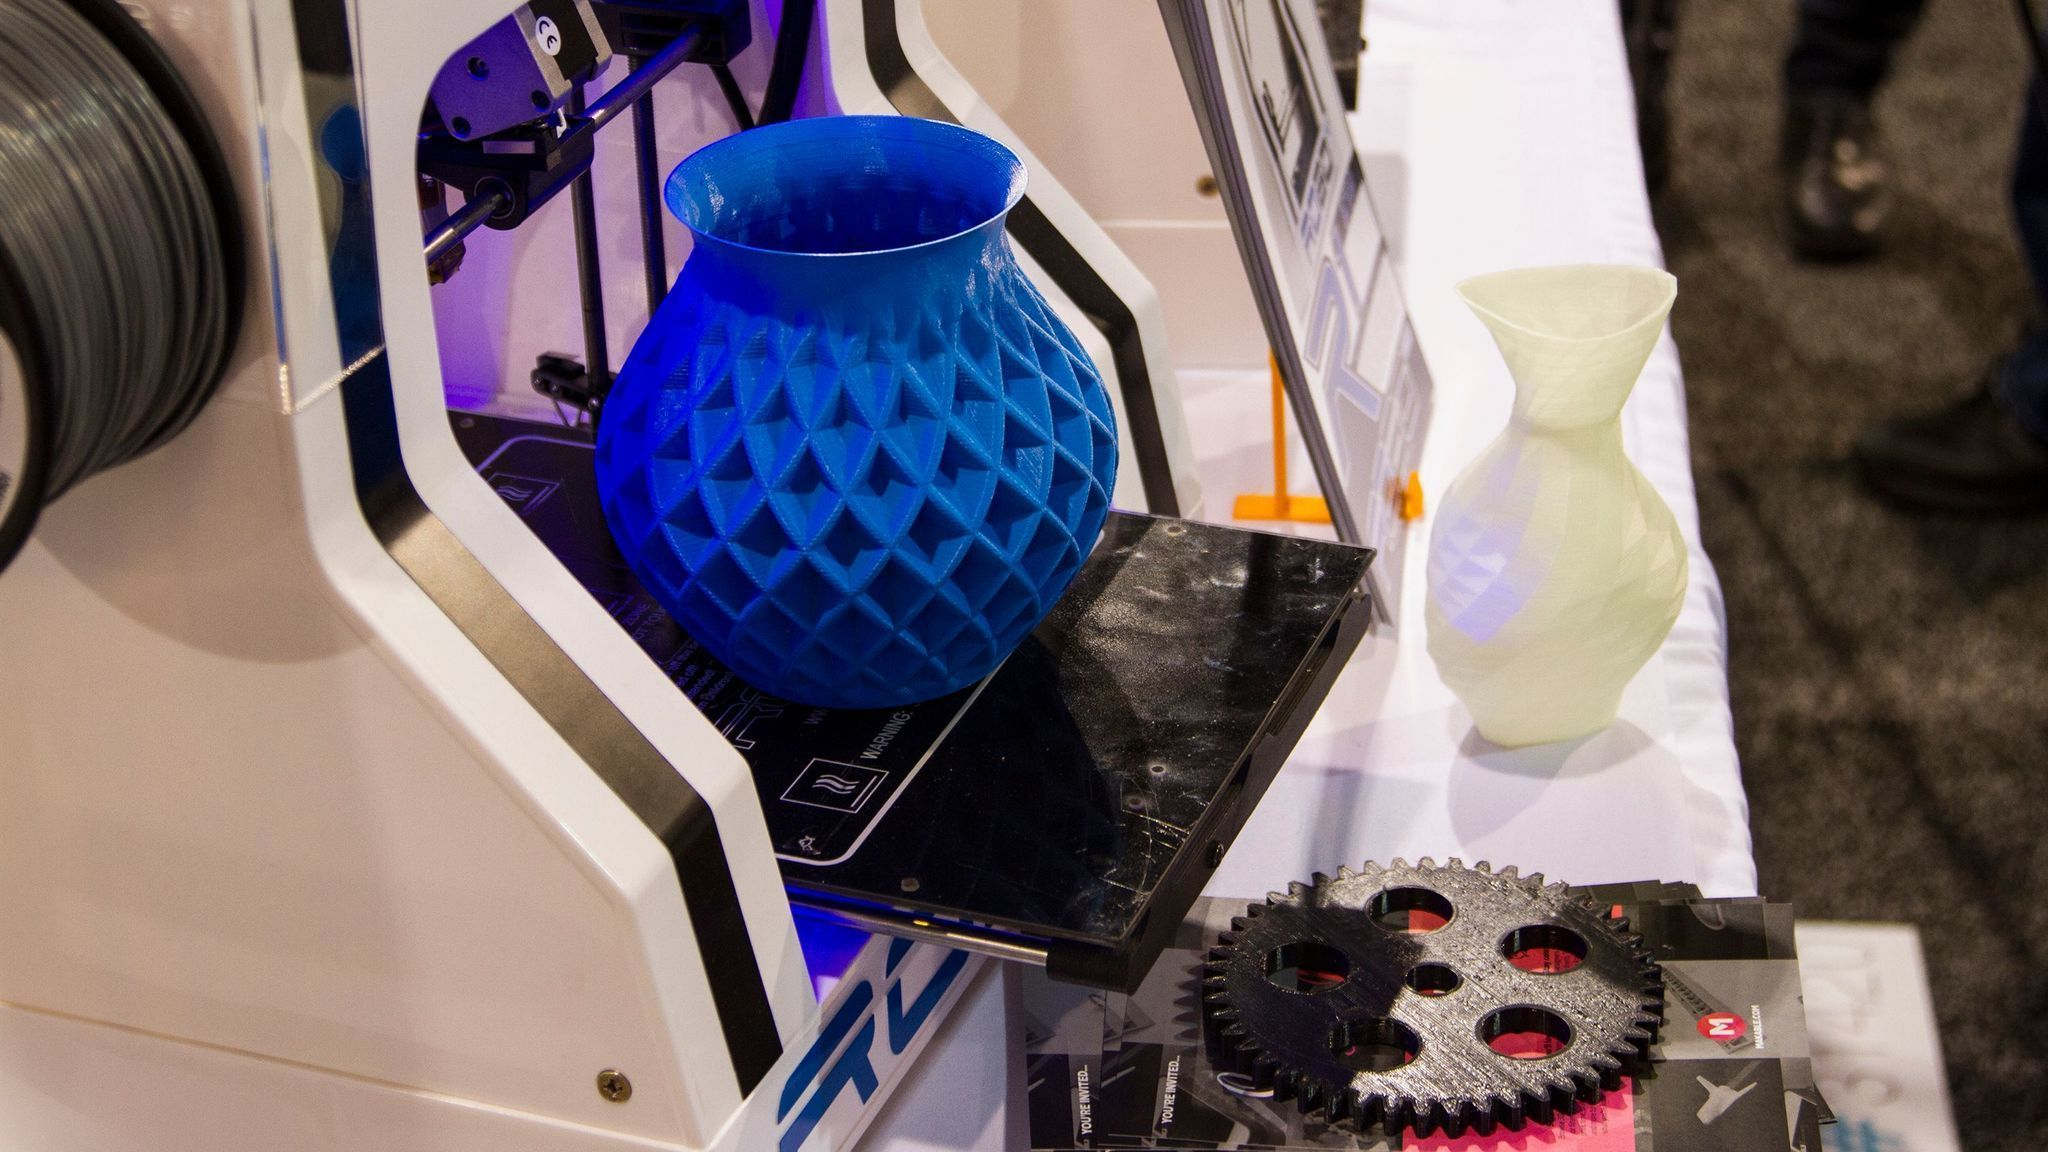 San diego 3d printer firm goes public in australia raises 43 san diego 3d printer firm goes public in australia raises 43 million the san diego union tribune reviewsmspy